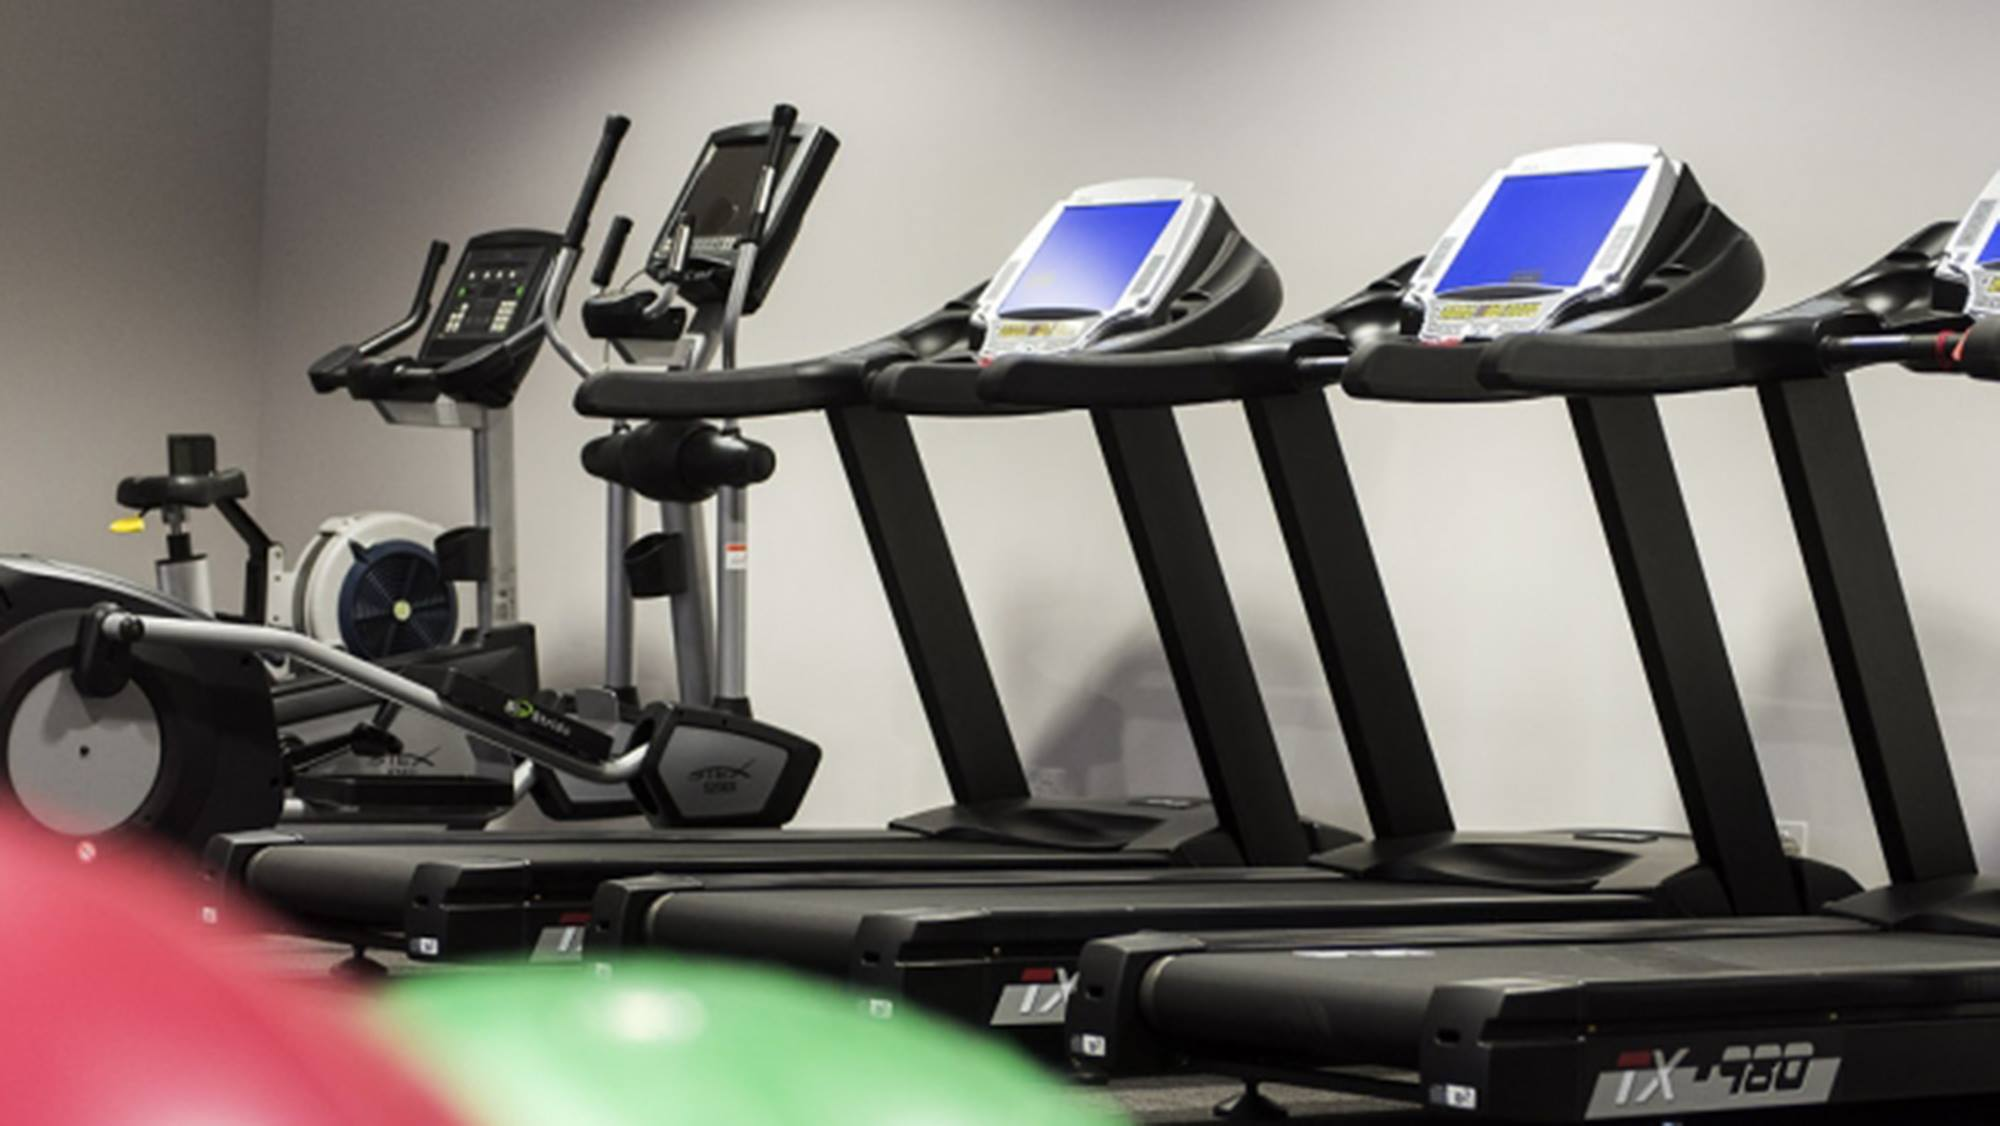 QIII gym treadmill